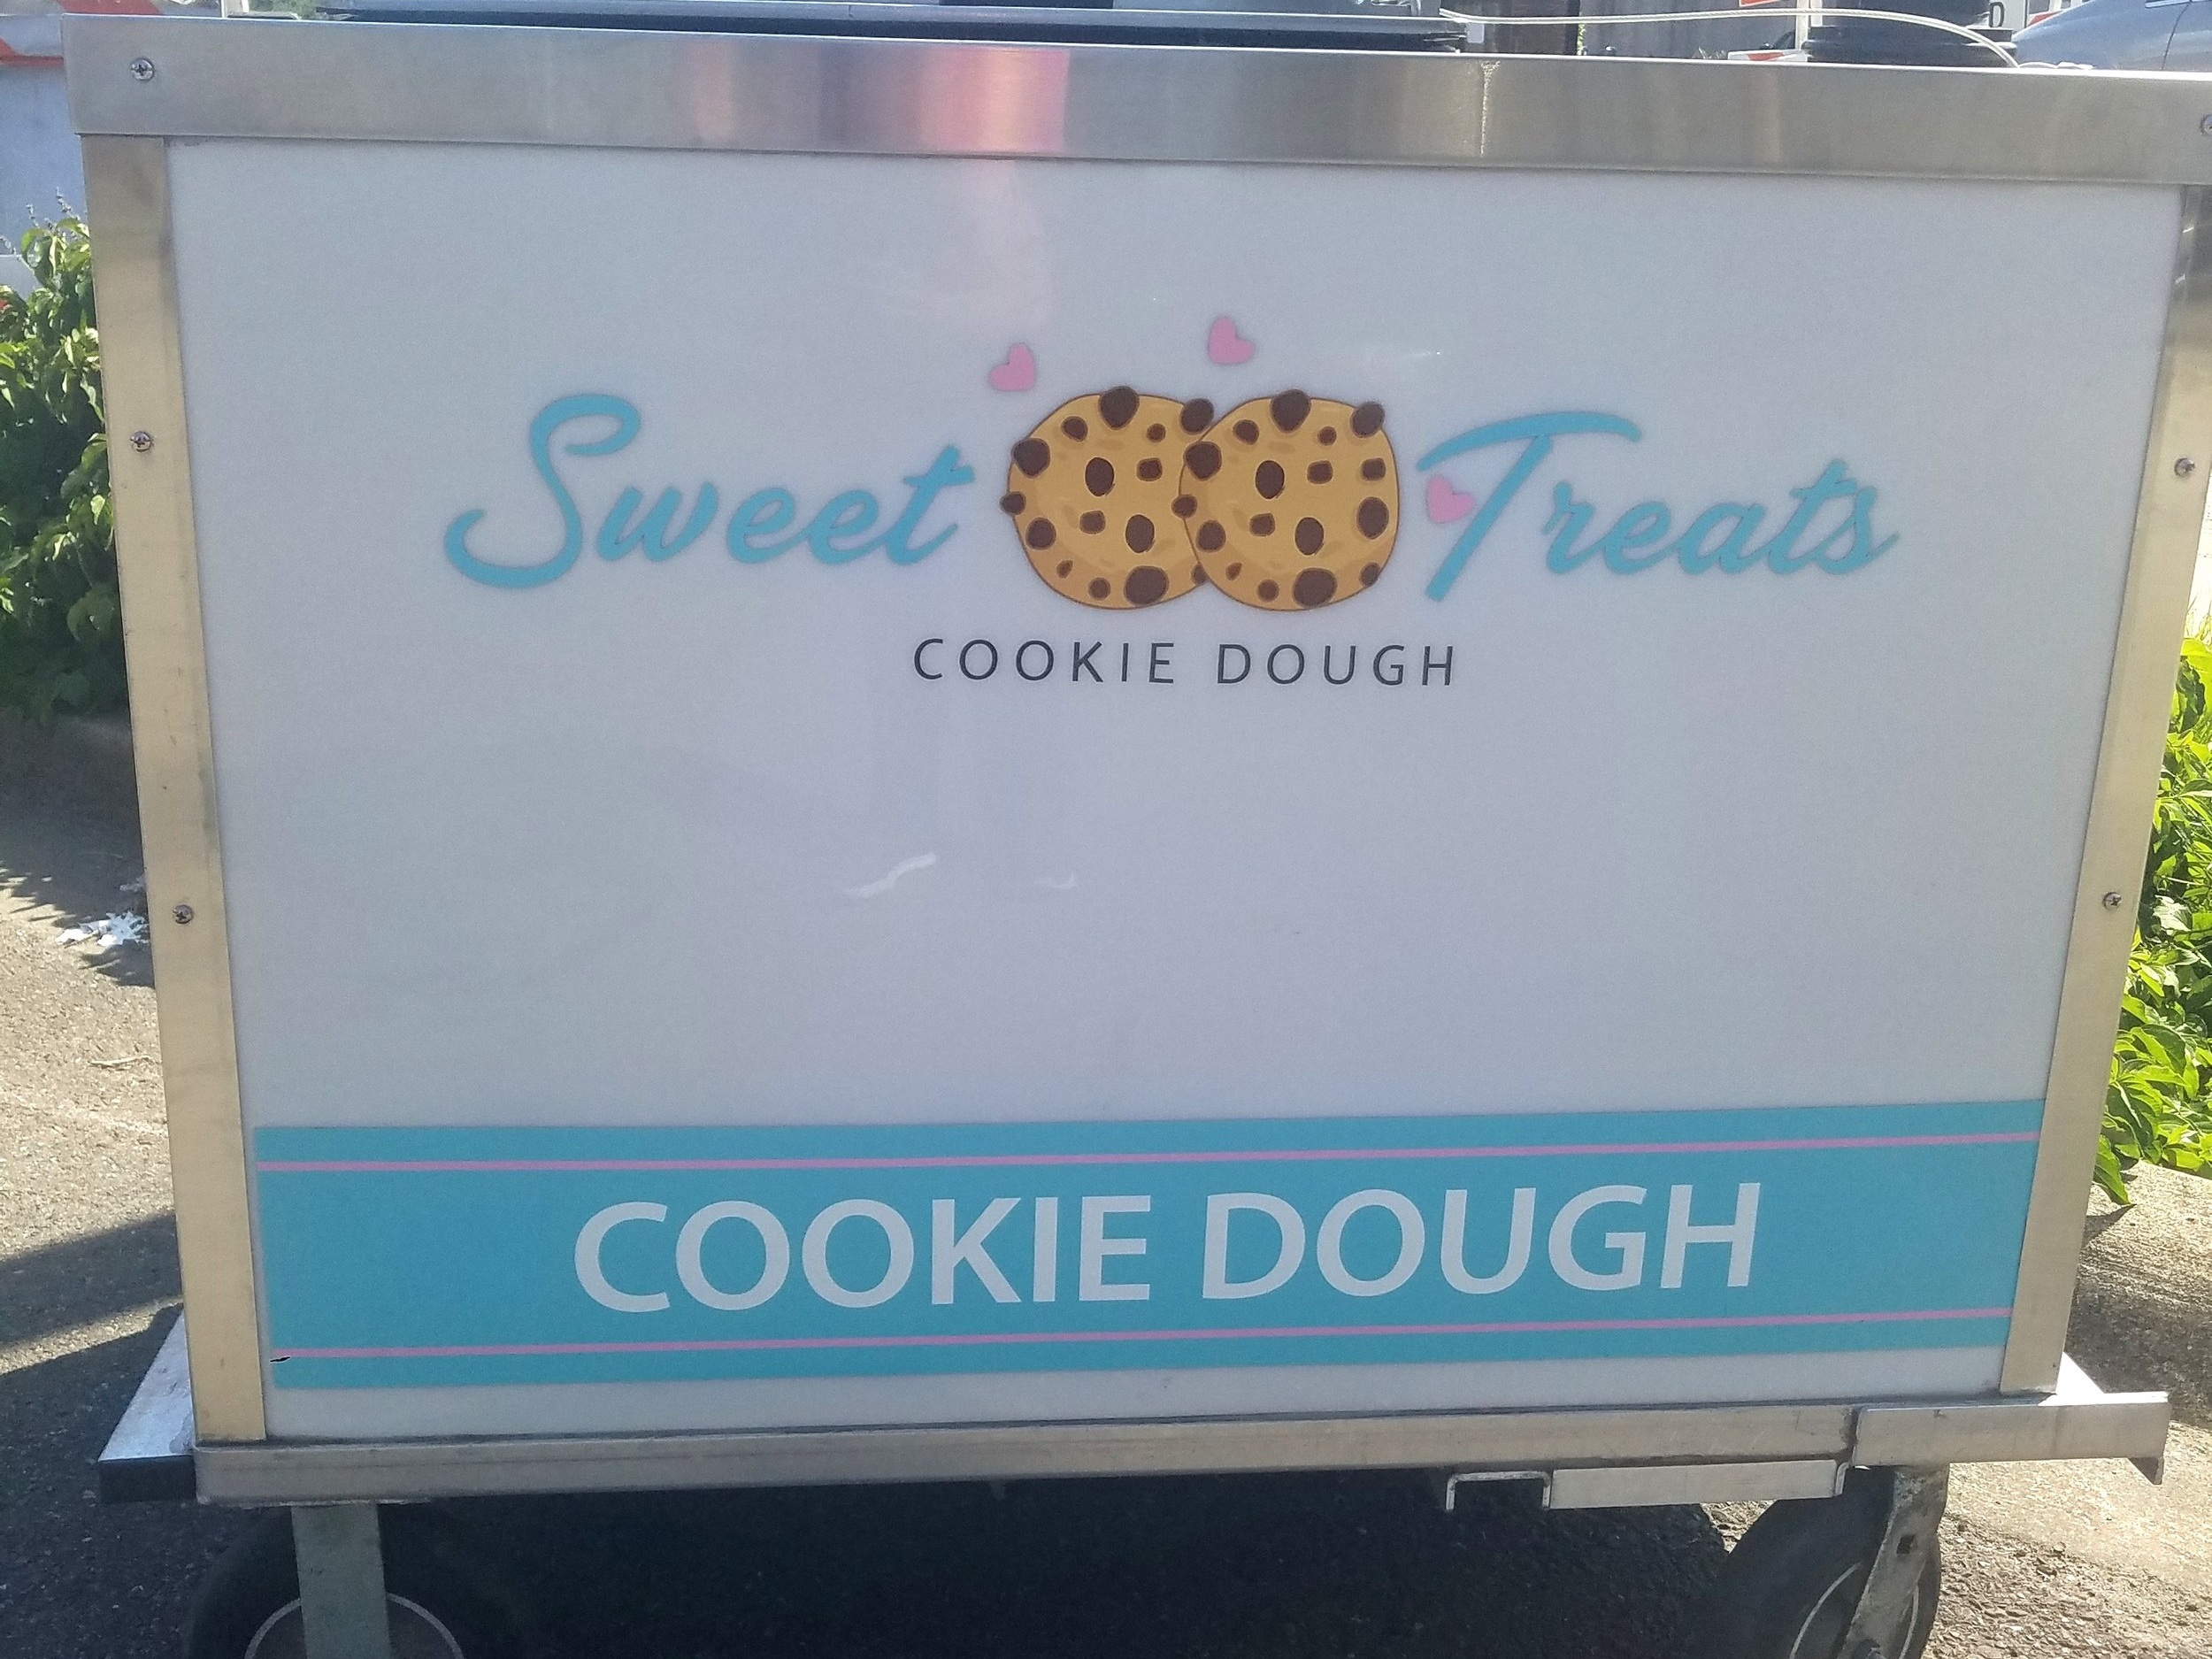 Sweet Treats - Edible cookie dough and cookie dough treatsFind on FacebookWebsite: http://www.sweettreatscookiedough.comPhone: (425) 785-5239Email: info@sweettreatscookiedough.comAvailable for cateringAlso serves in: Issaquah, Redmond, Bellevue